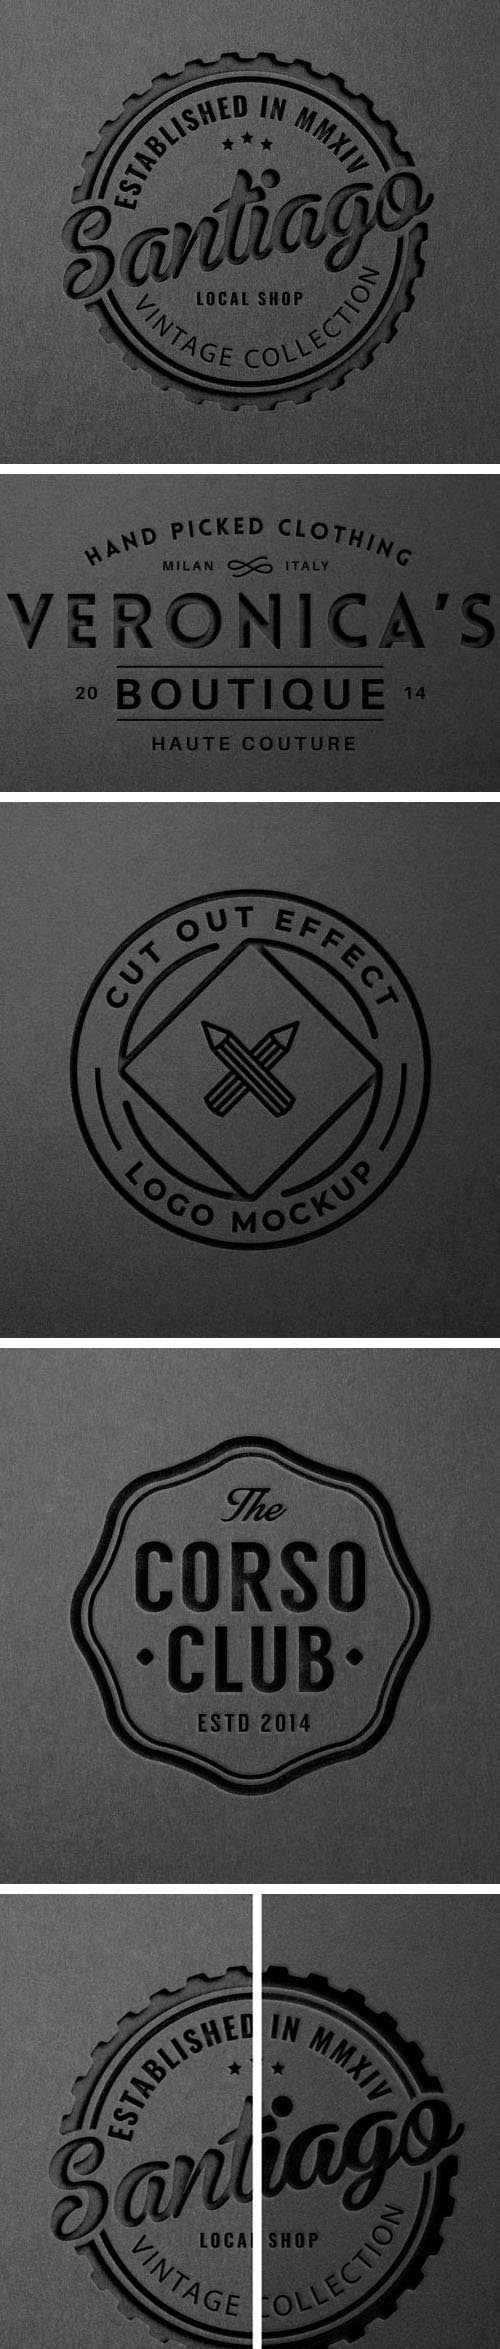 Cut-Out Effect - Paper Logo PSD Mockup Template